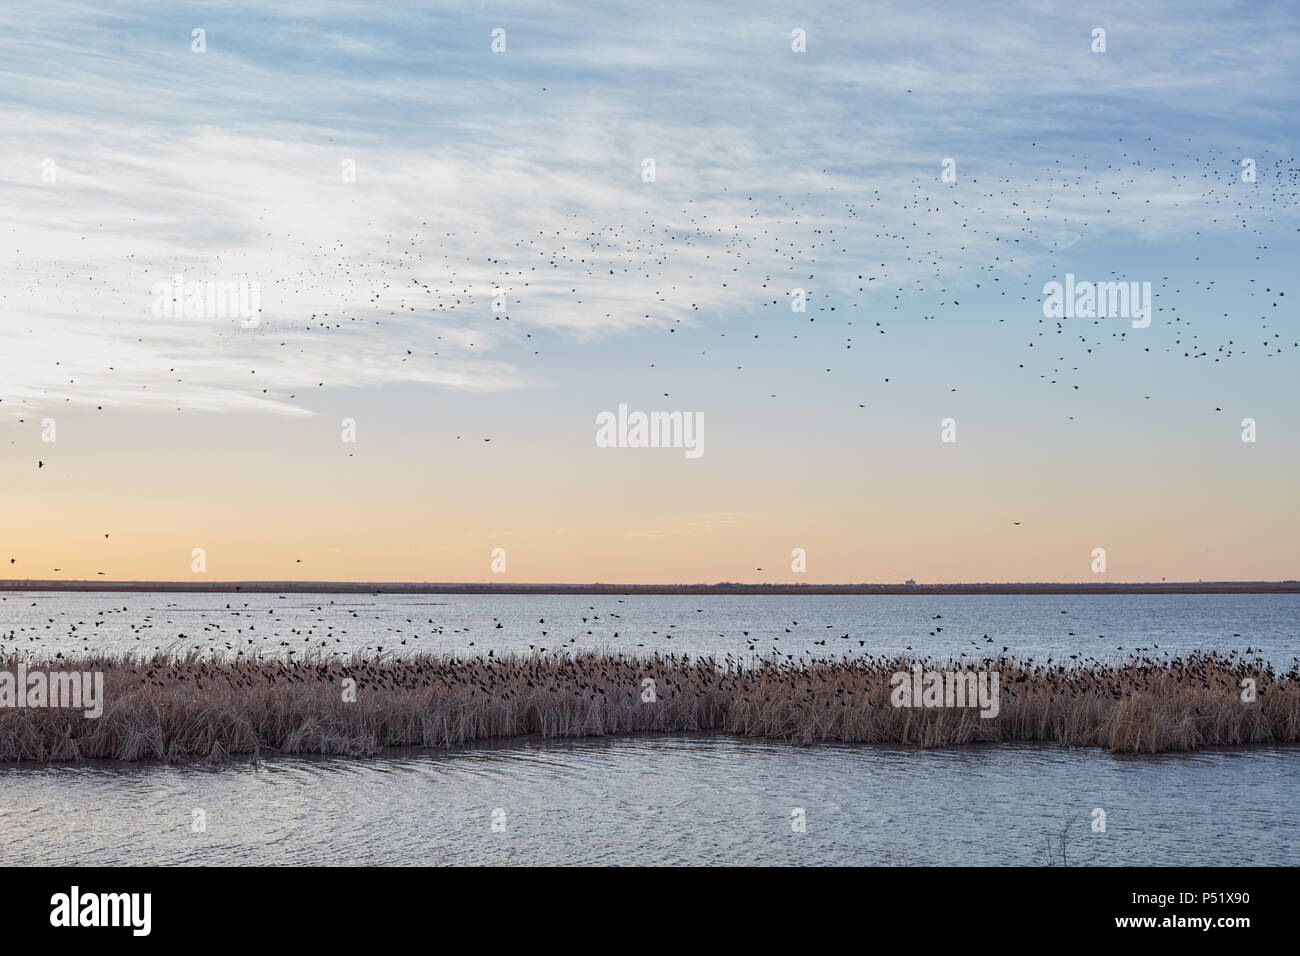 Migrating blackbirds overflying the wetlands of Cheyenne Bottoms, Kansas at sunset with an orange glow in the sky - Stock Image